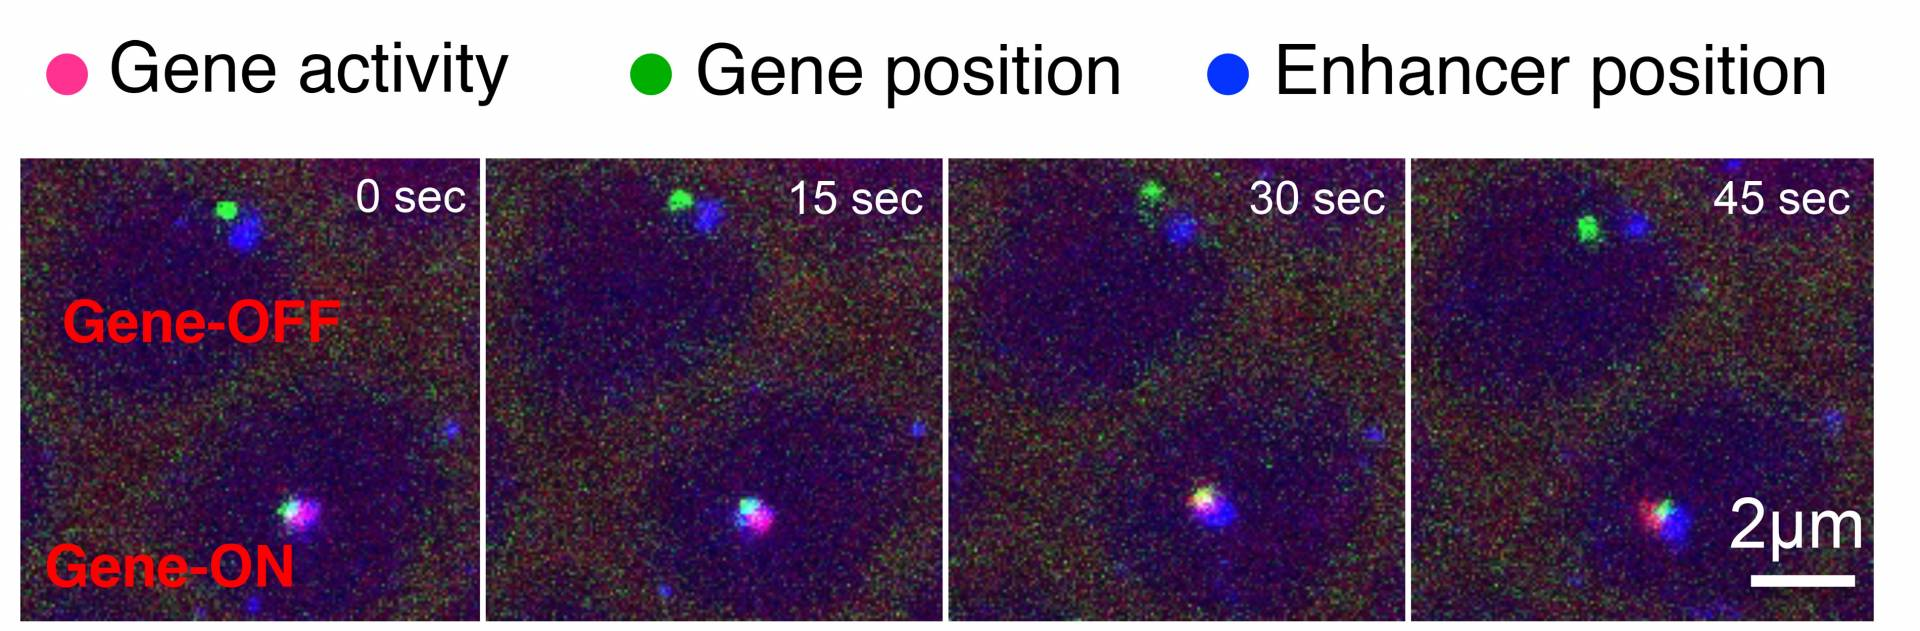 A time series of images reveals how a DNA segment known as an enhancer can turn on, or activate, its target gene